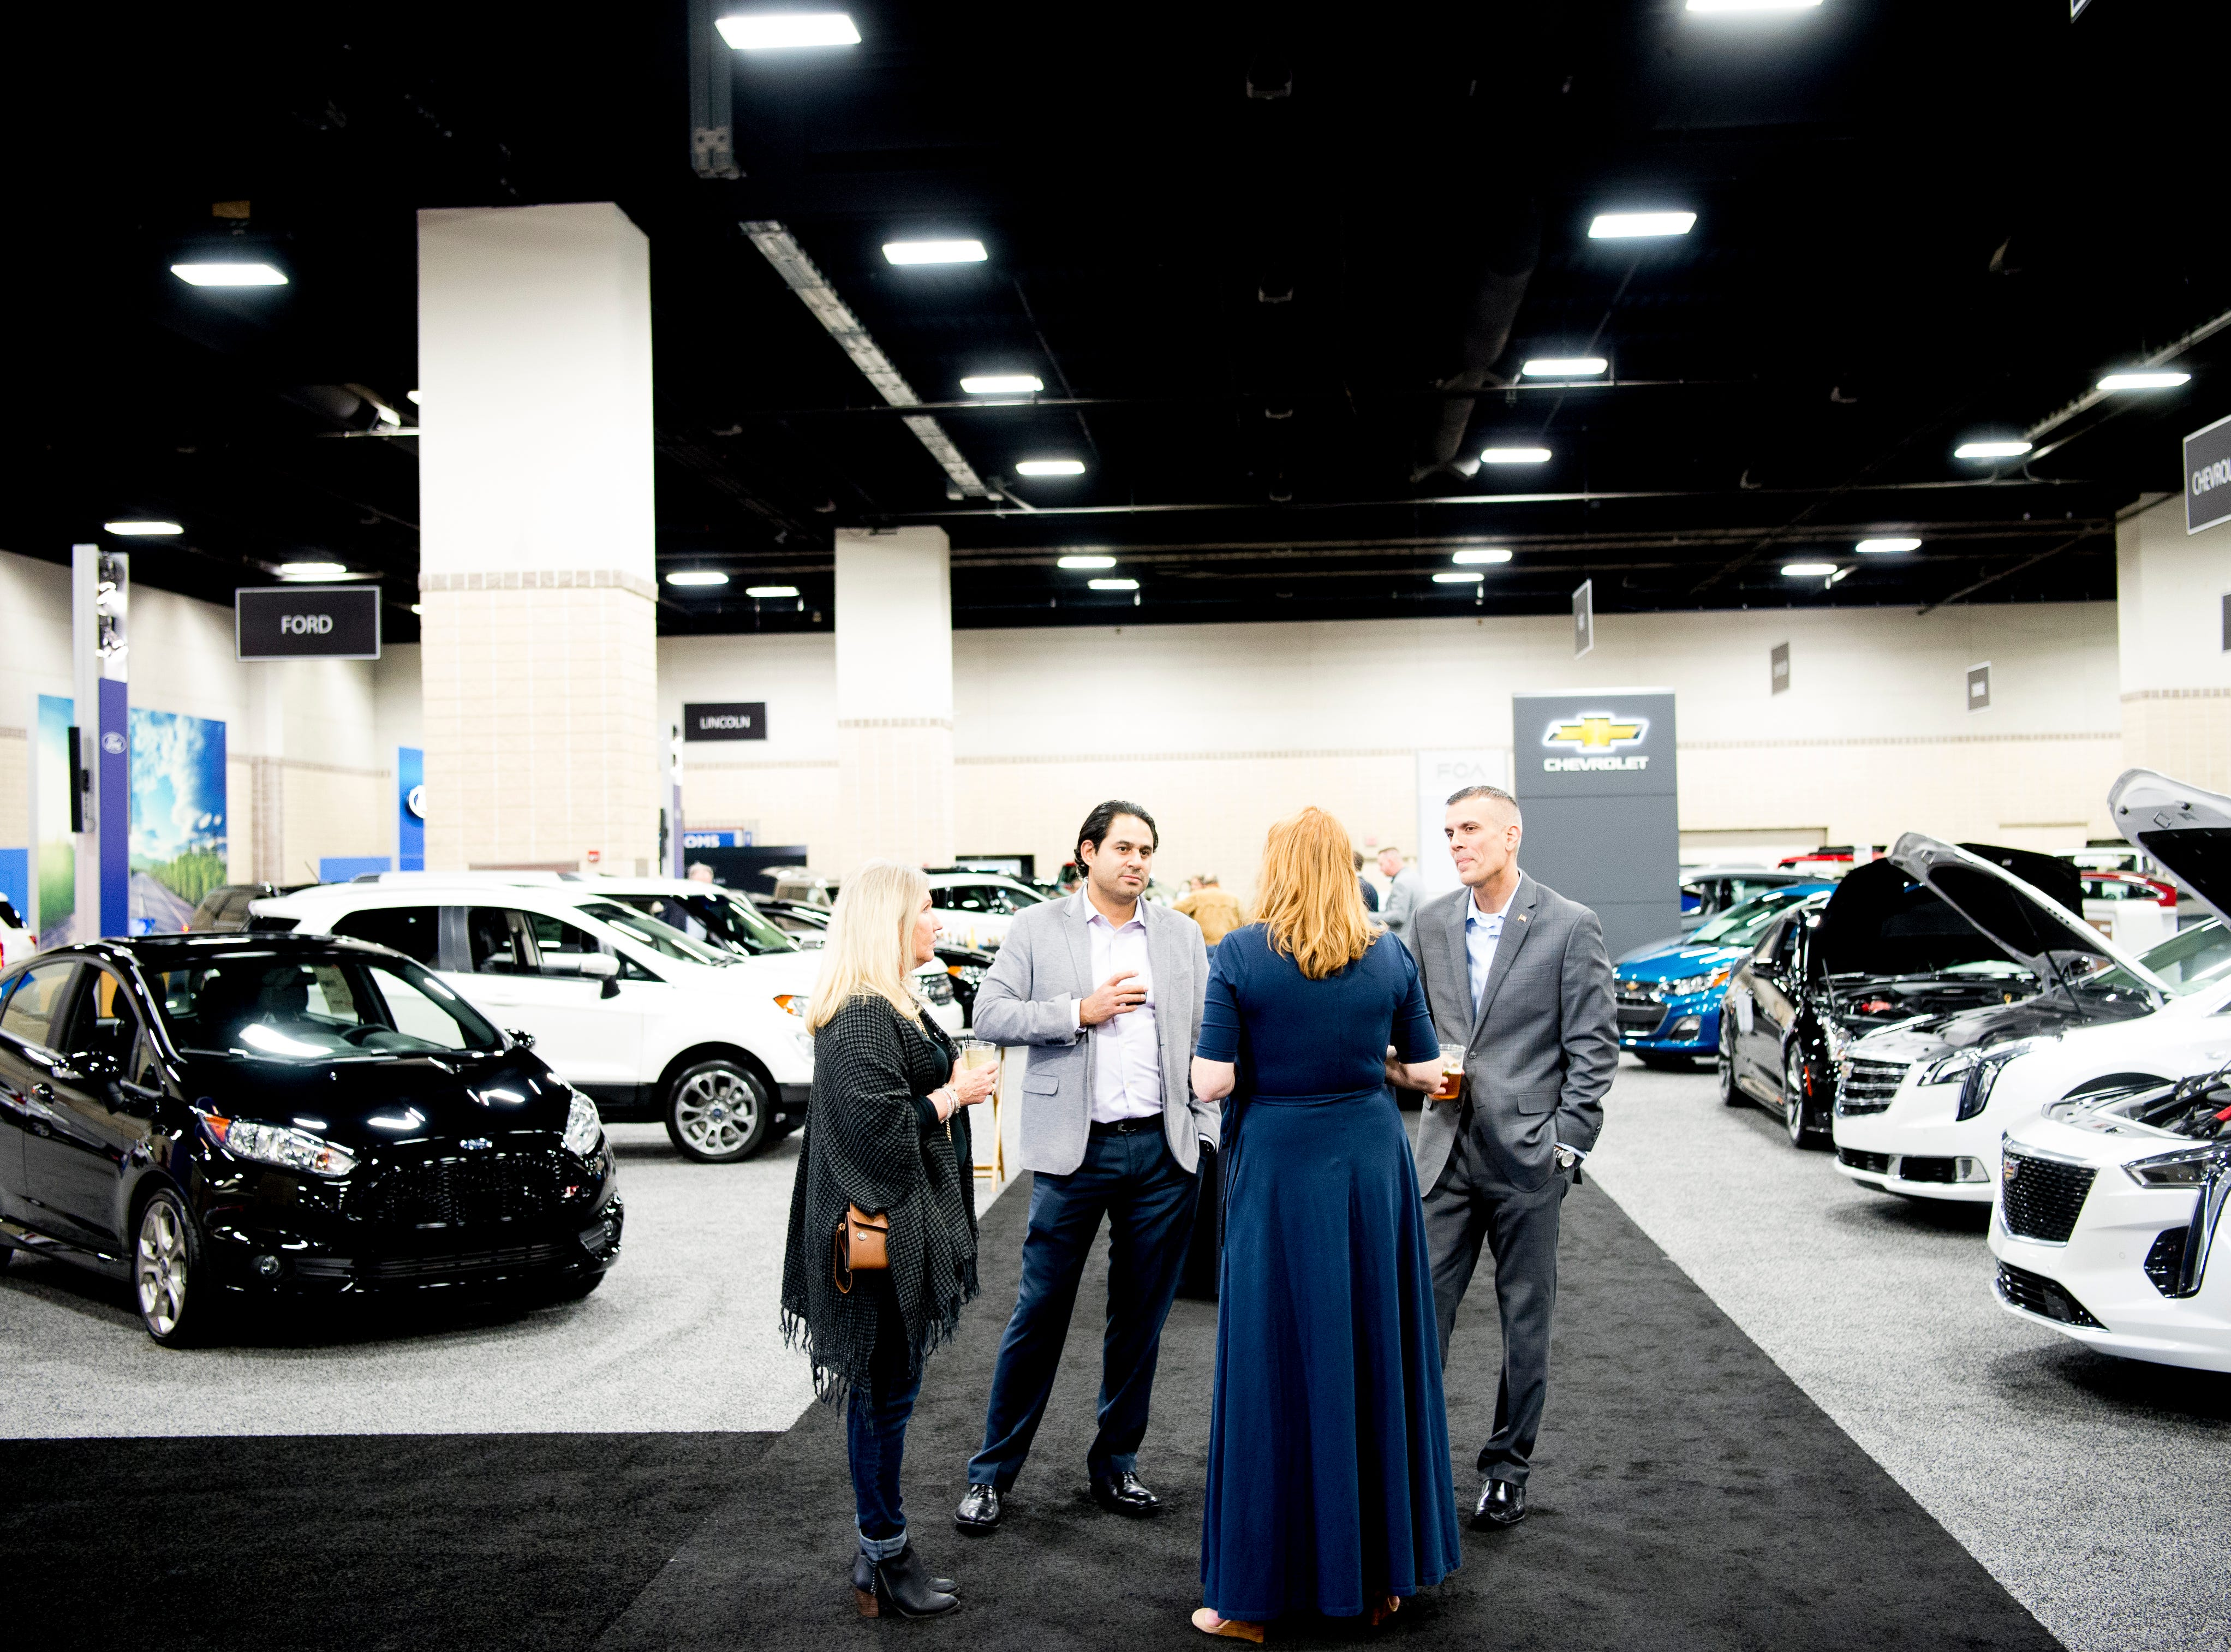 Attendees mingle at the Knox News Auto Show preview party in the Knoxville Convention Center in Knoxville, Tennessee on Thursday, February 21, 2019.